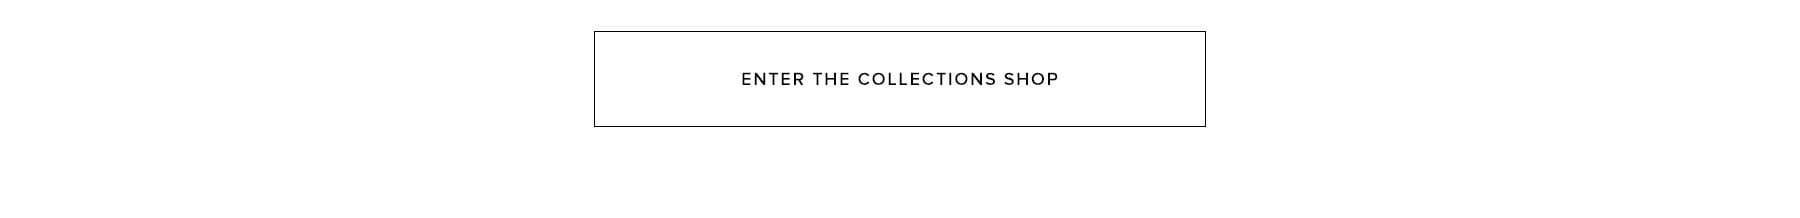 Enter the collection shop.